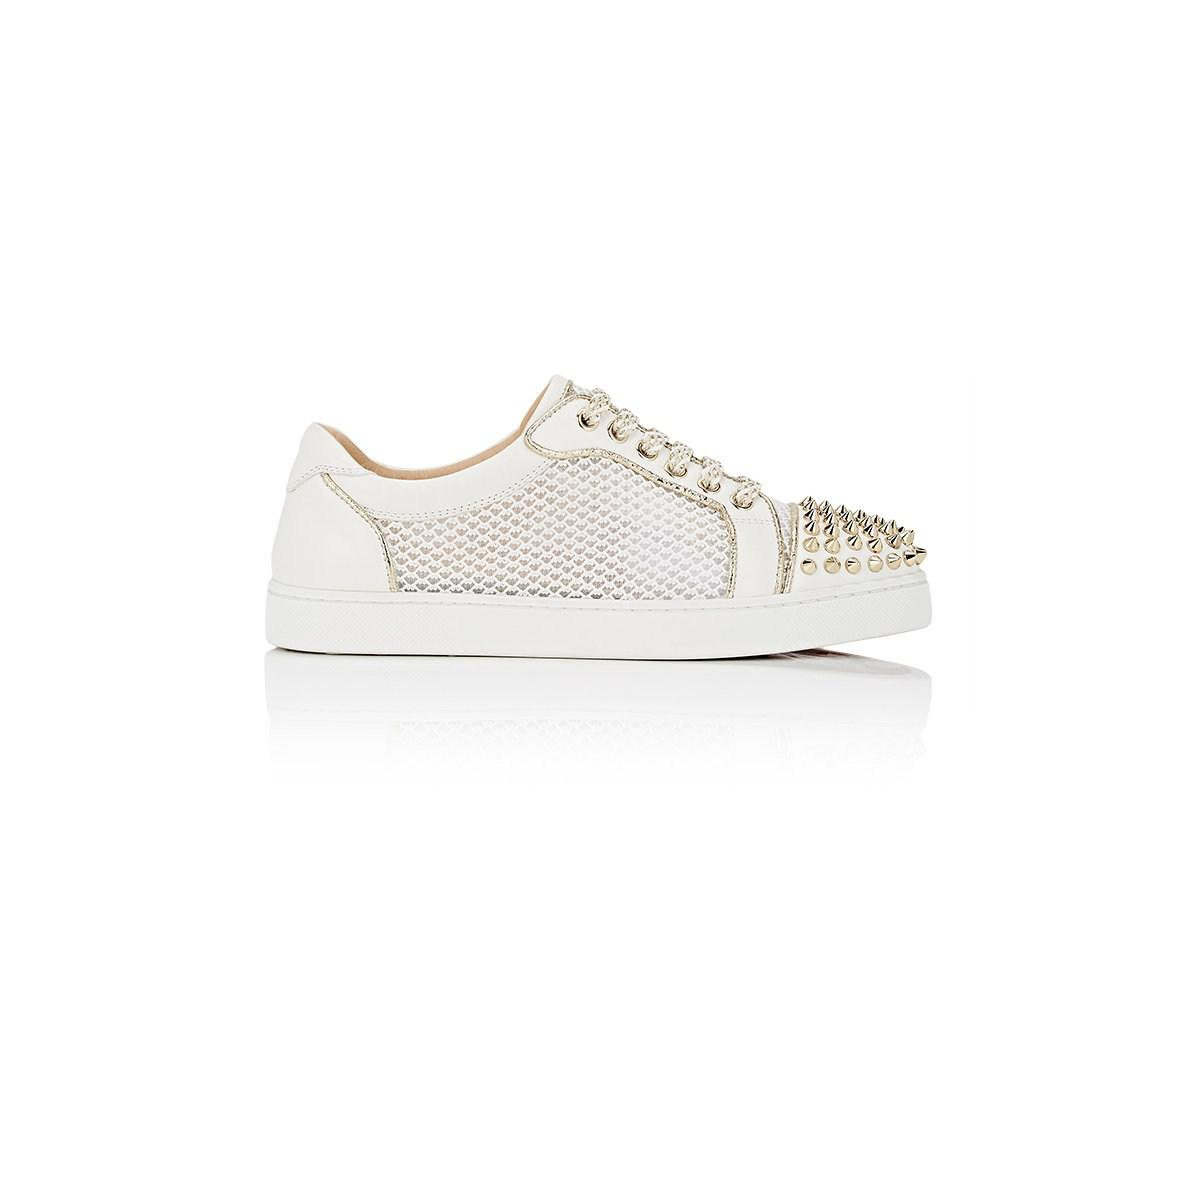 d4d3e391b68 Christian Louboutin White Ac Viera Spikes Flat Leather & Mesh Sneakers